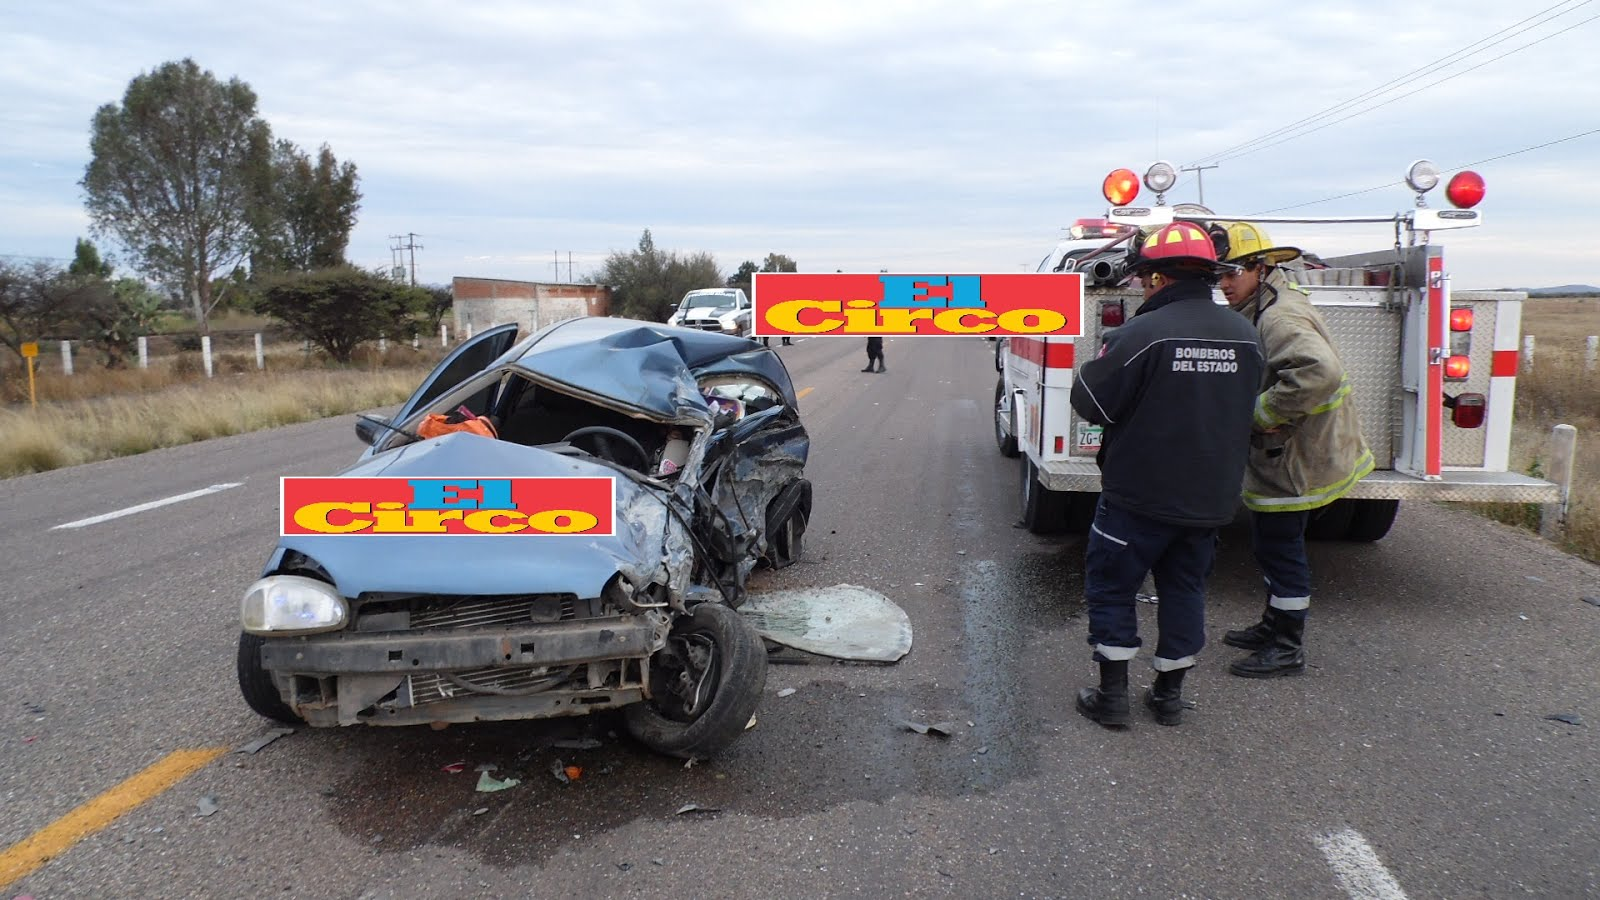 Noticiero El Circo De Aguascalientes http://noticieroelcirco.blogspot.com/2013/01/tragico-y-lamentable-accidente-en.html